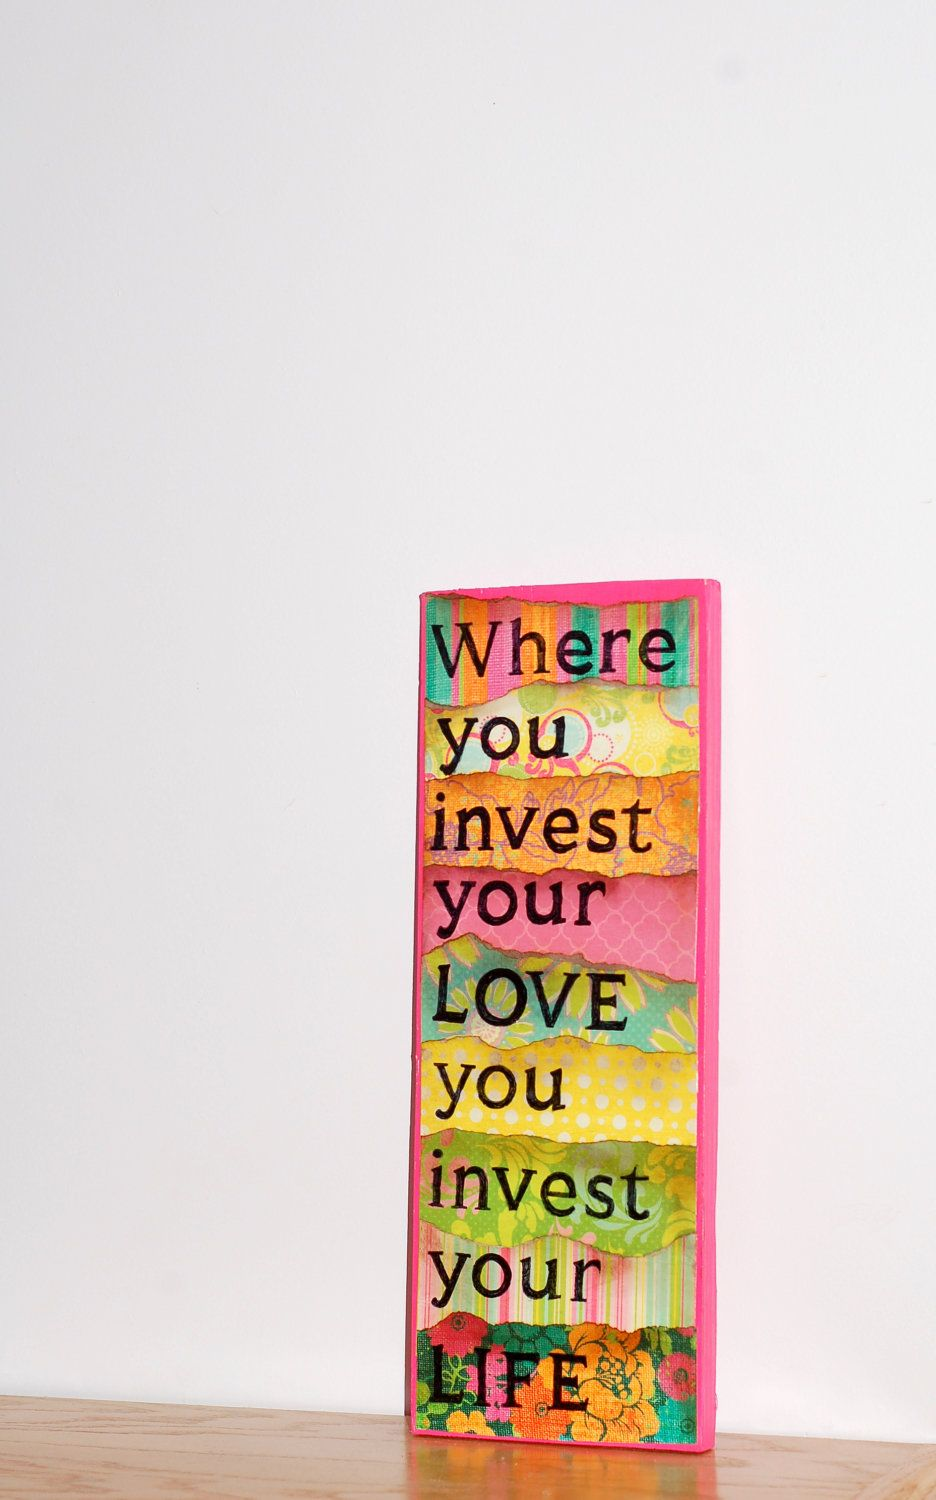 Where you invest your love you invest your life ... Mumford & Sons ... Mixed Media Art via Etsy